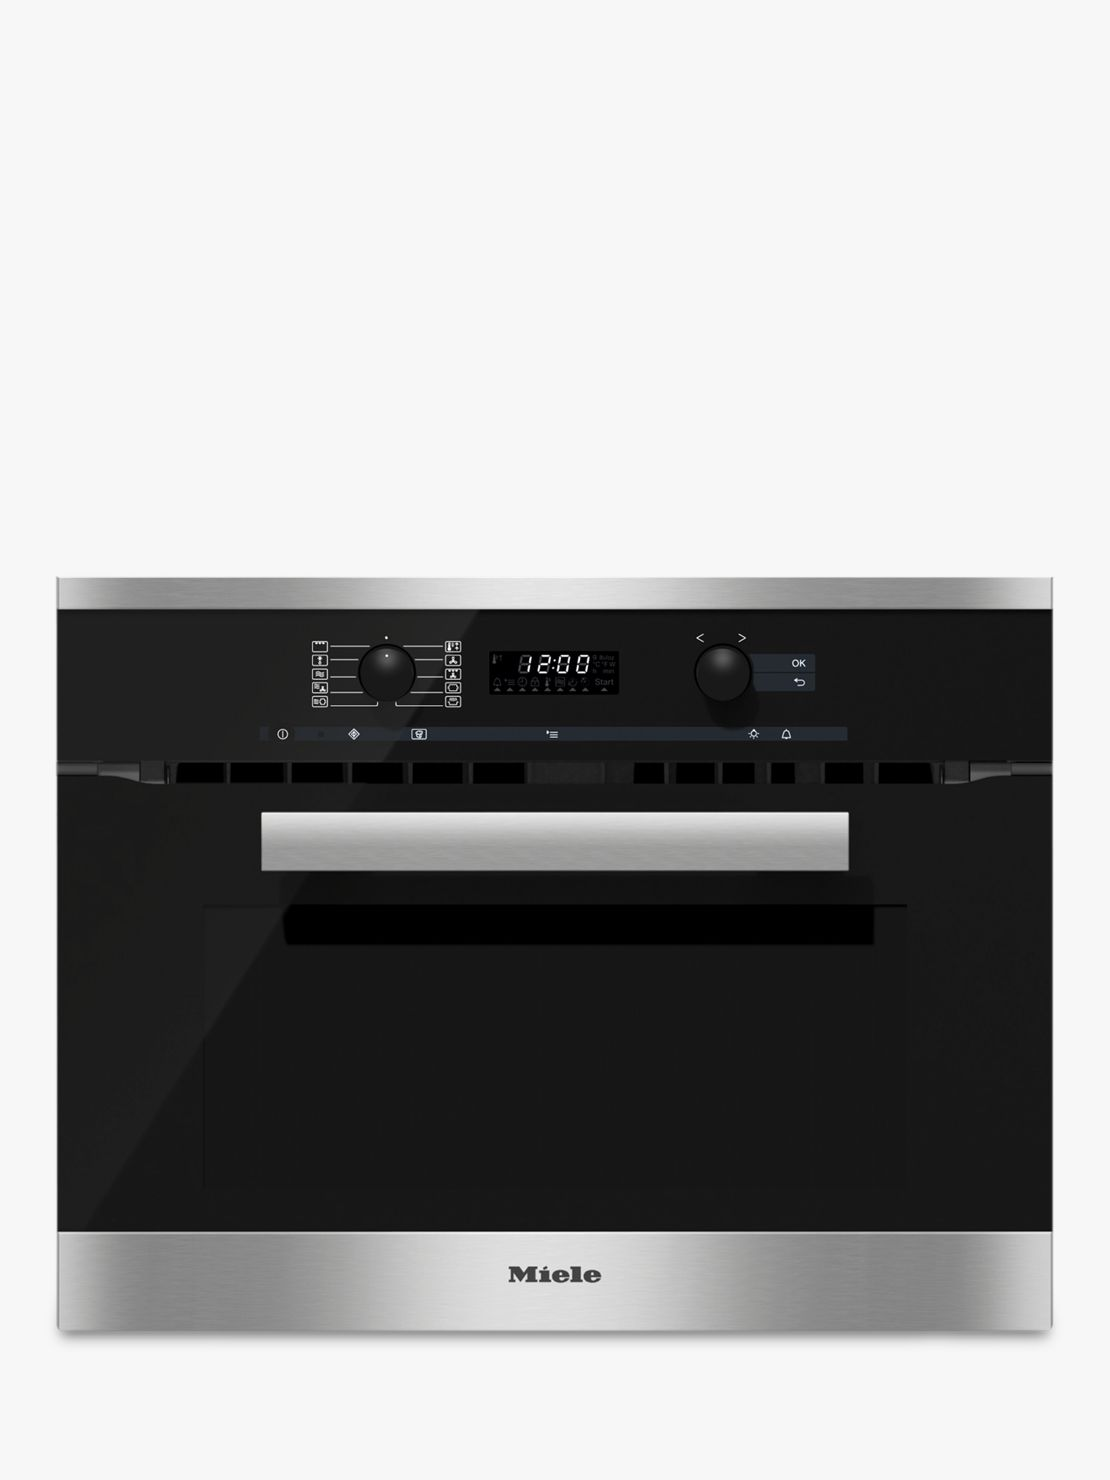 Miele H6200bm Microwave Oven Compare Prices At Foundem